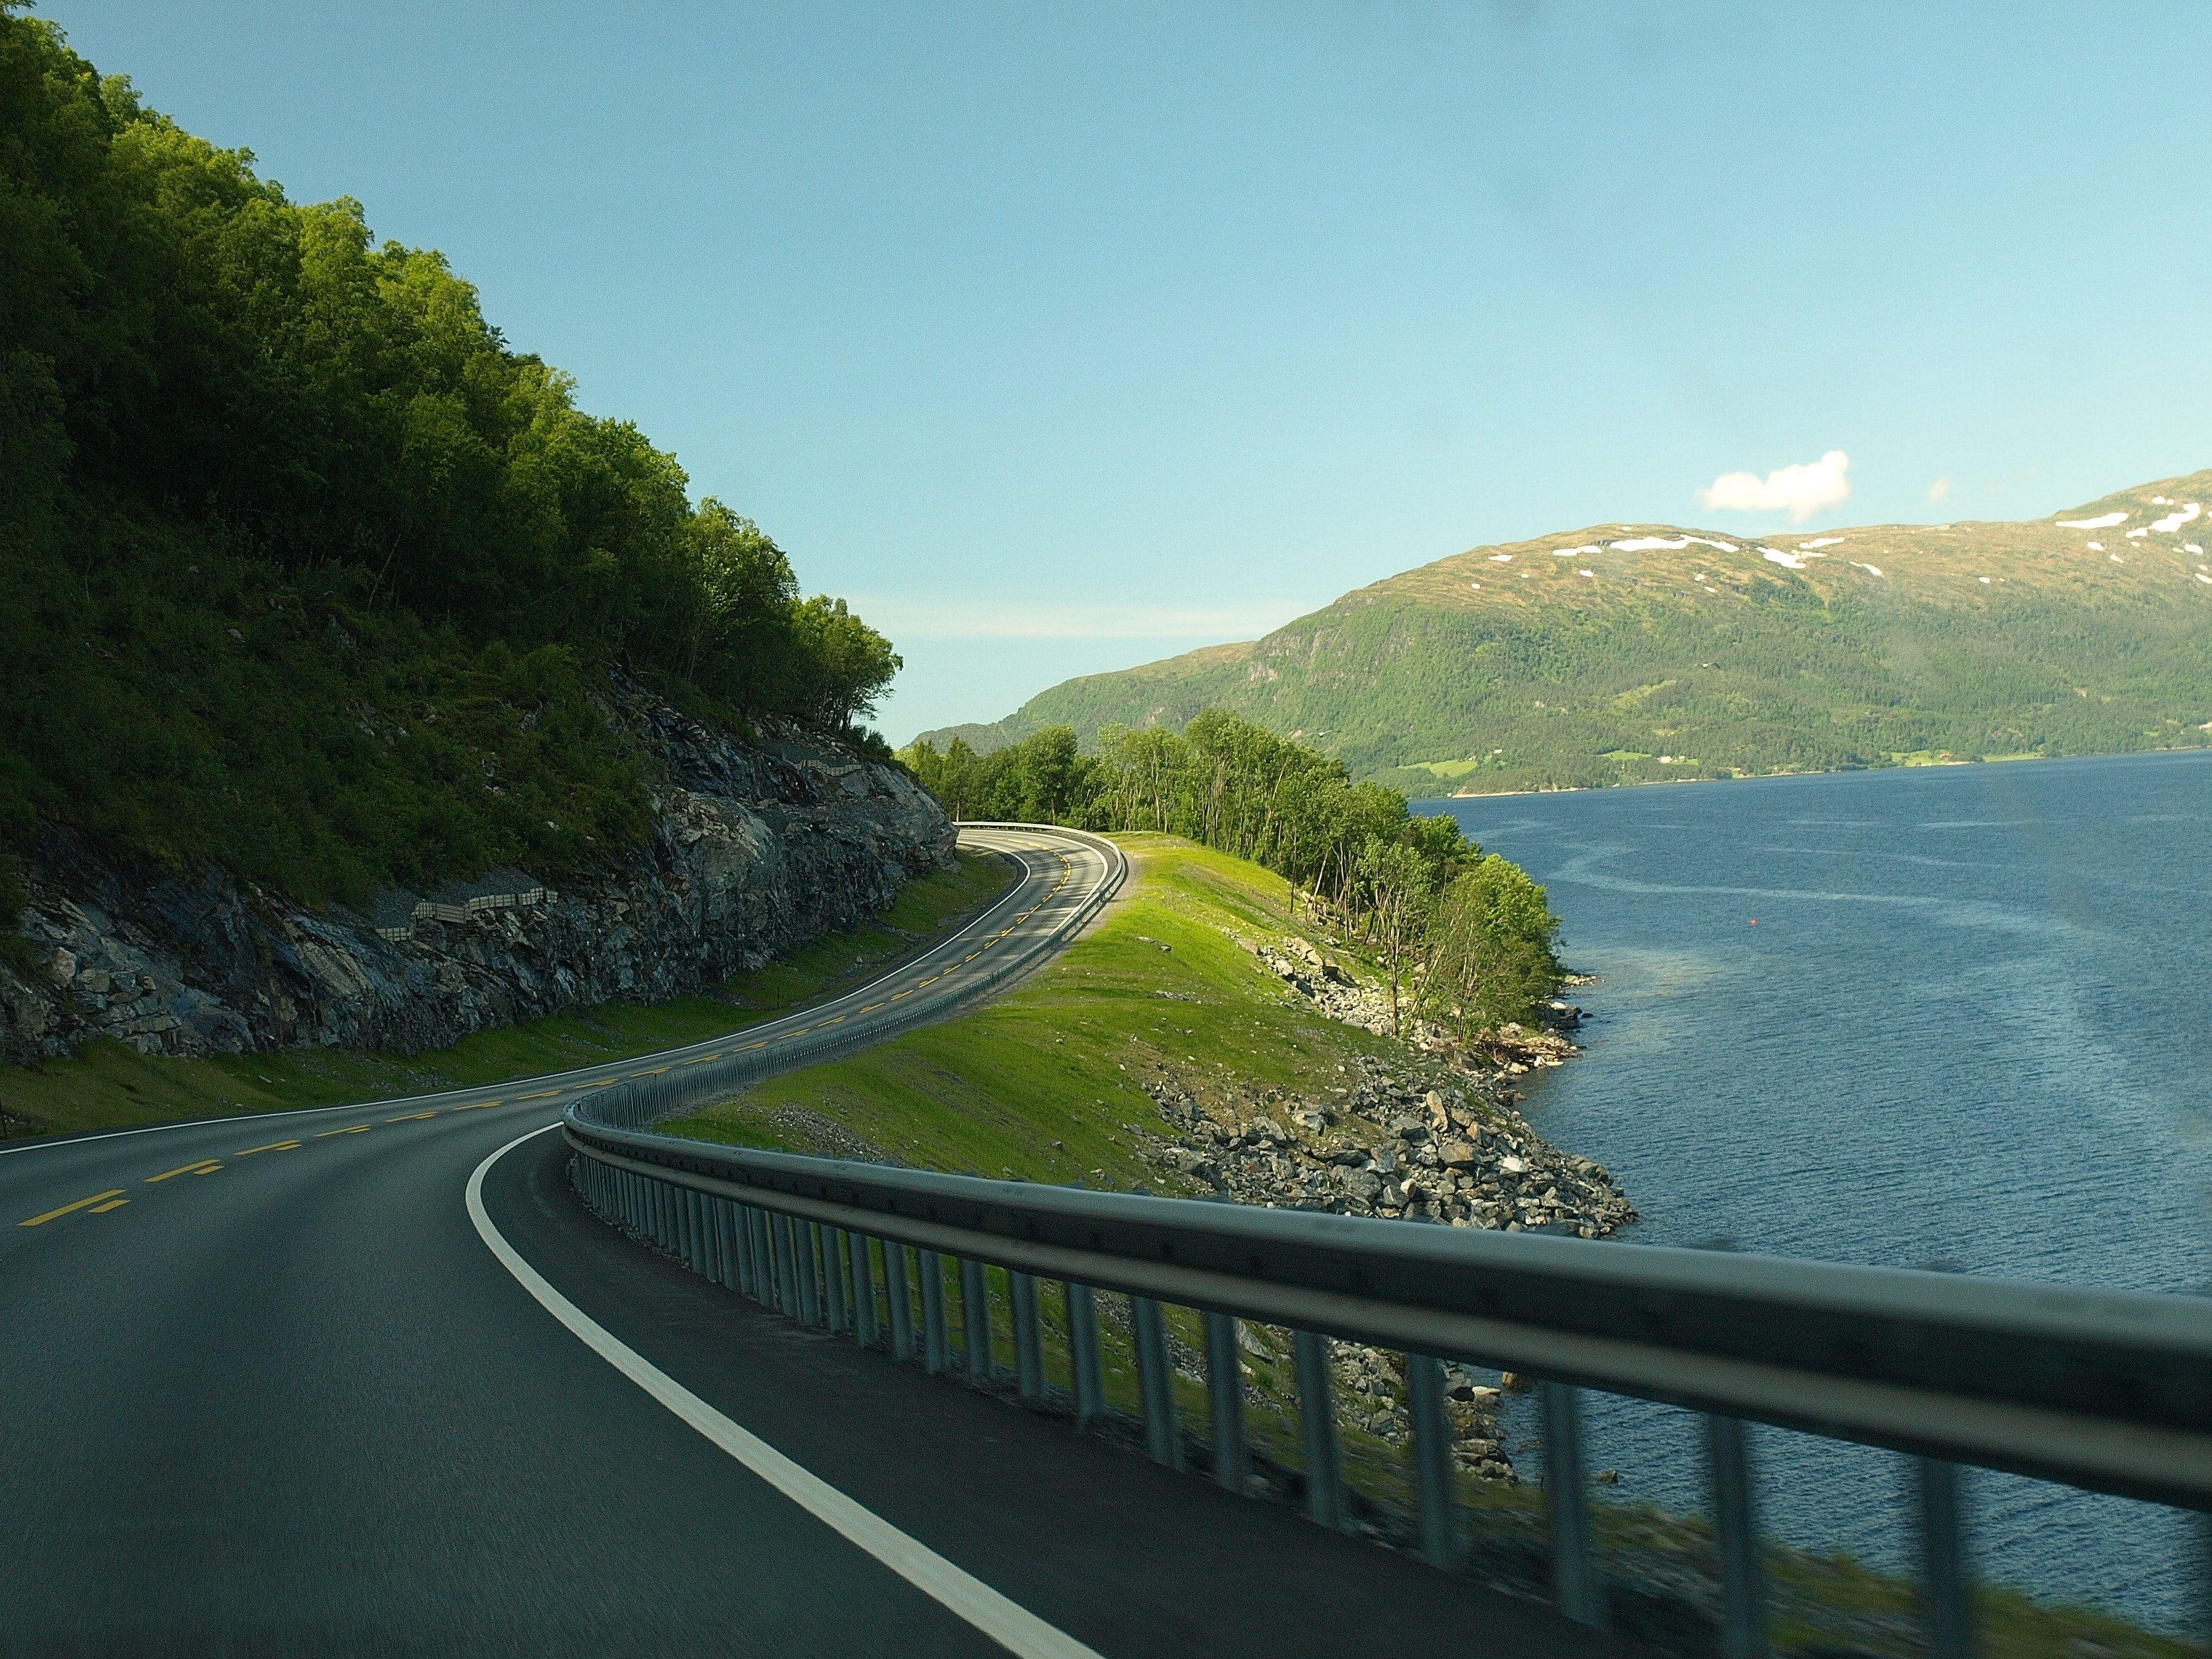 Concrete Road Near Body Of Water, Travel, Sky, Trees, Trip, HQ Photo